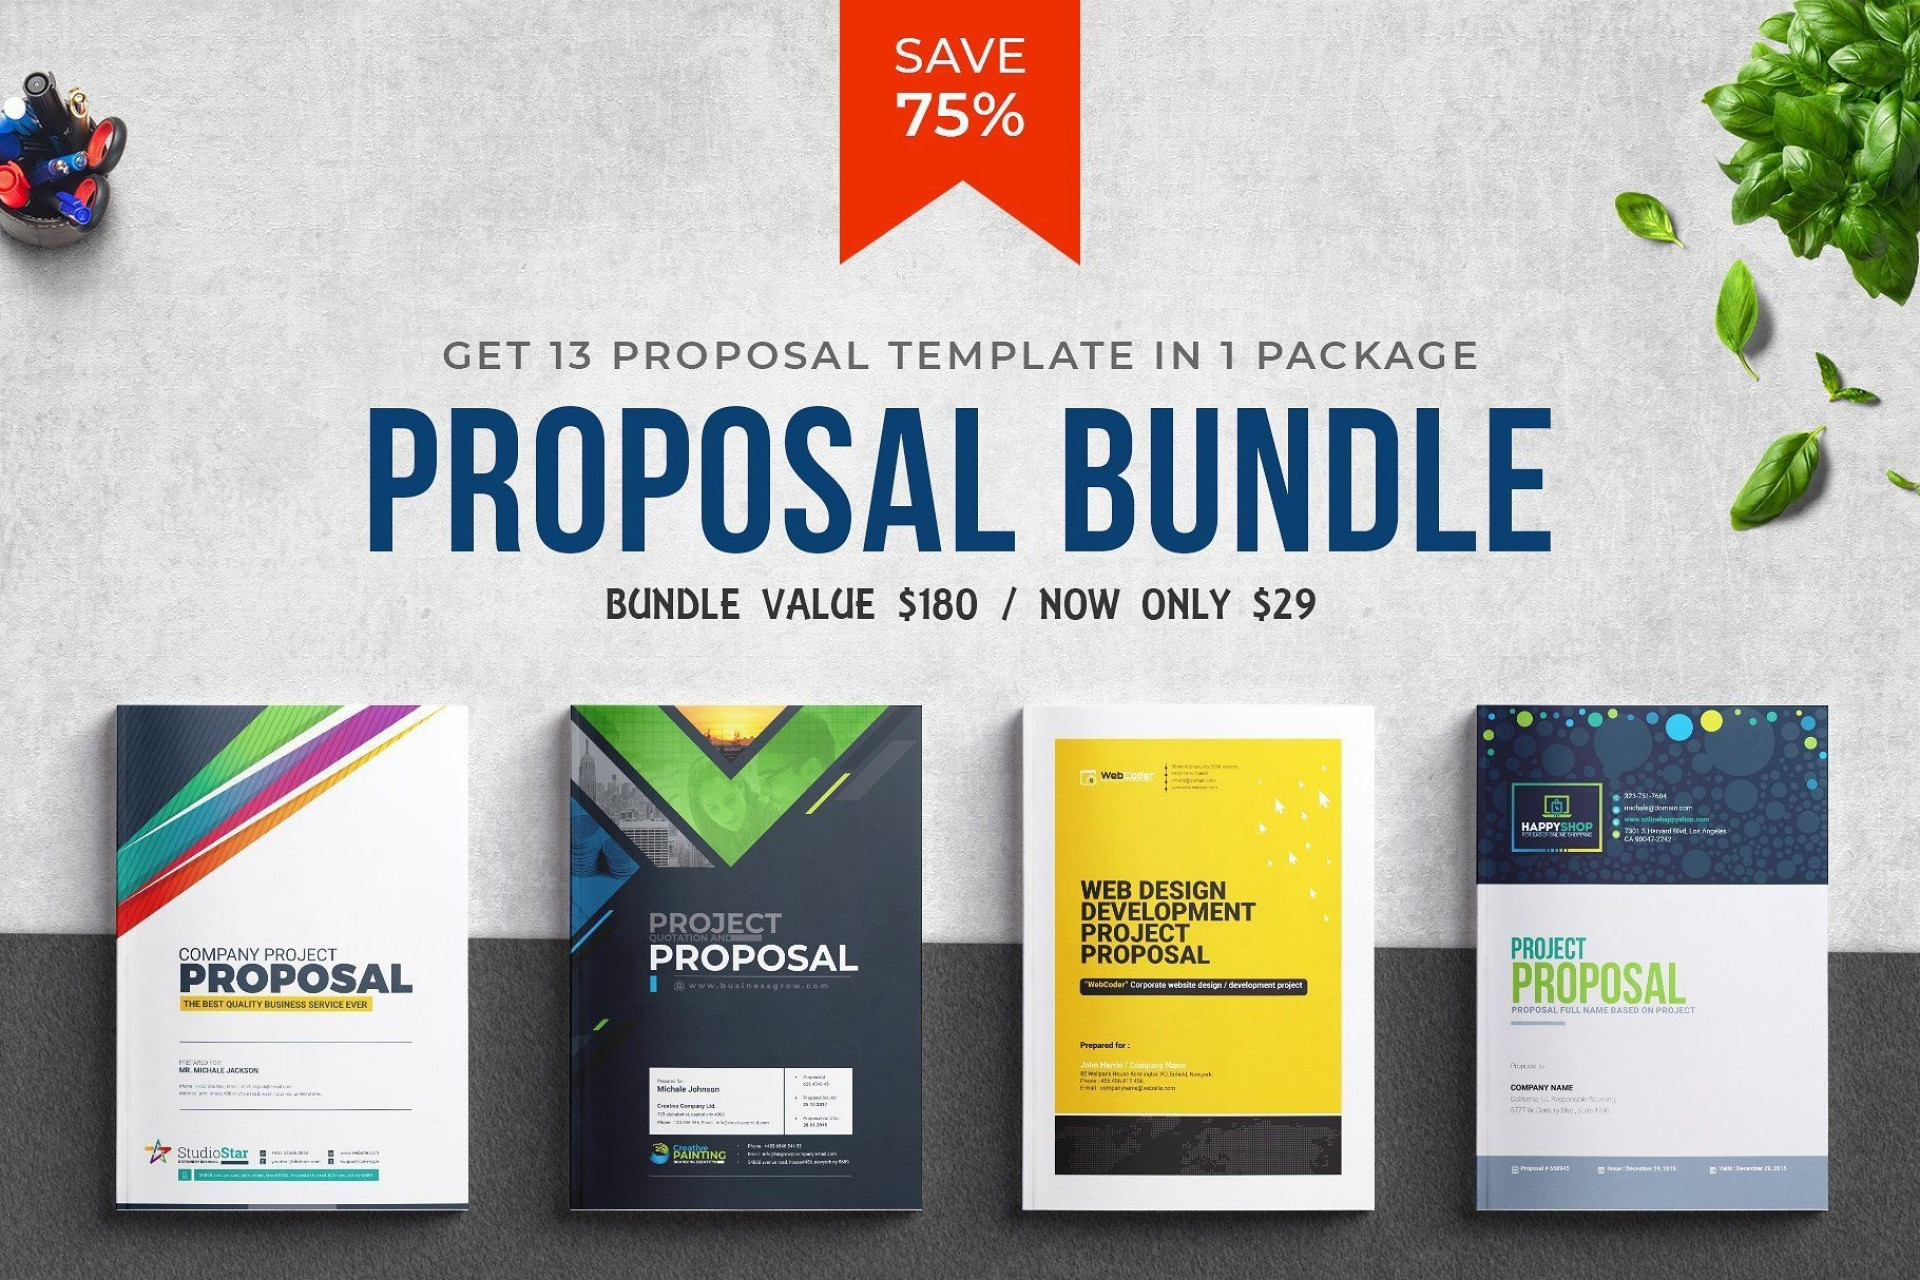 001 Formidable Graphic Design Proposal Template Word High Resolution 1920